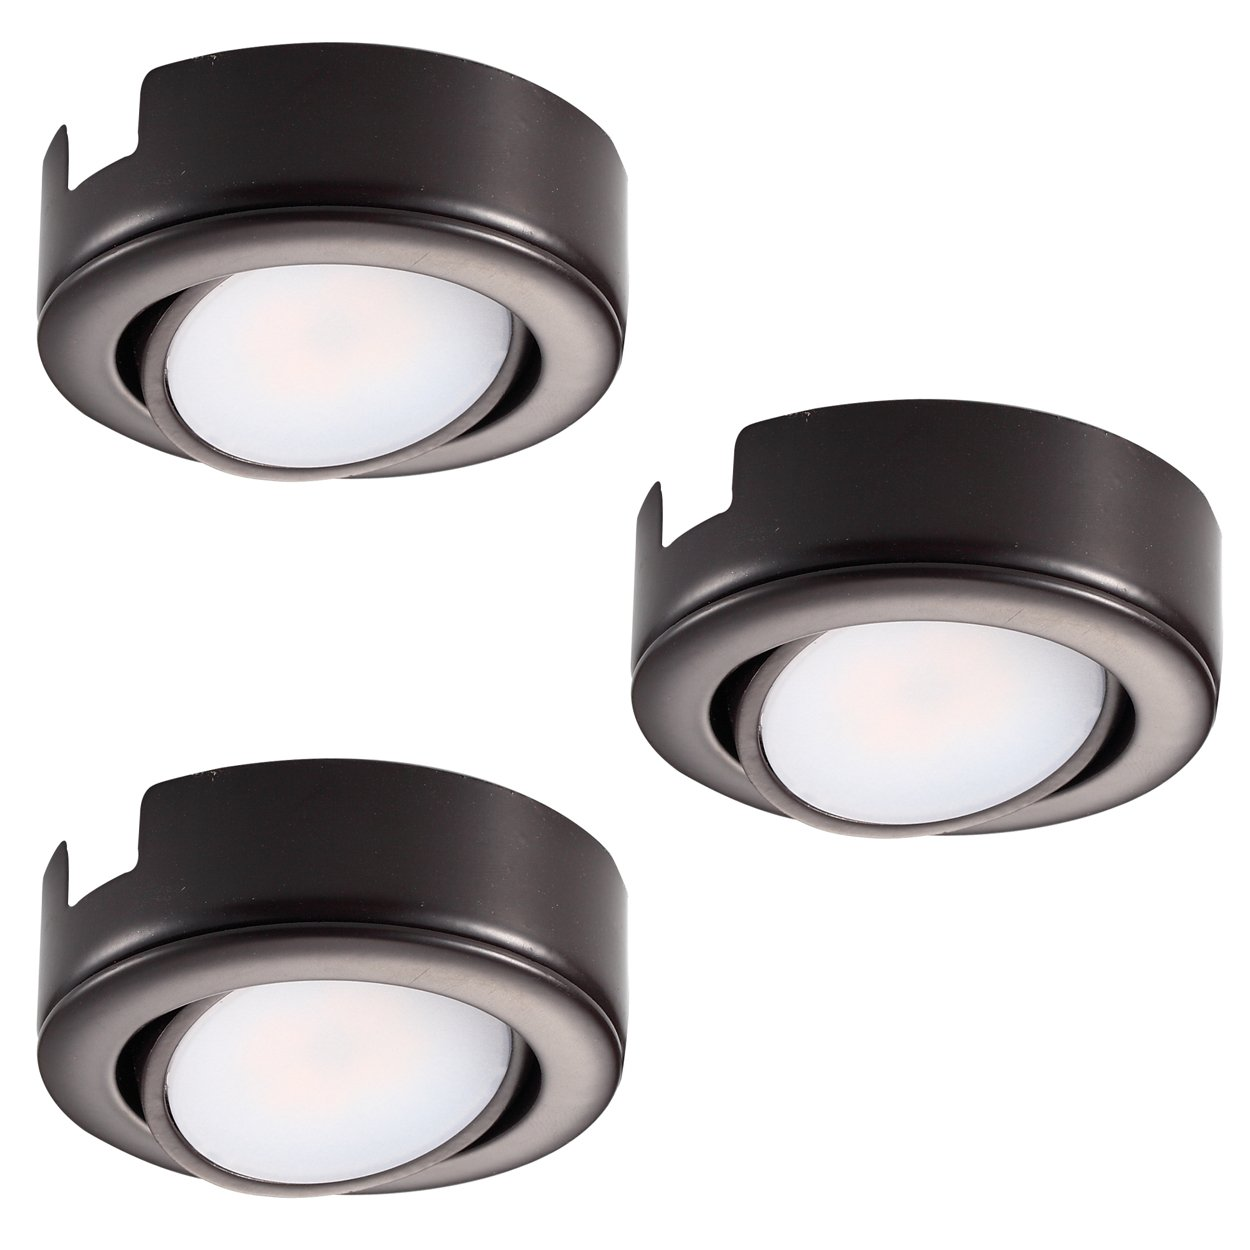 GetInLight Dimmable and Swivel, LED Puck Light Kit with ETL List, Recessed or Surface Mount Design, Warm White 2700K, Bronze Finish, (Pack of 3), IN-0107-3-BZ